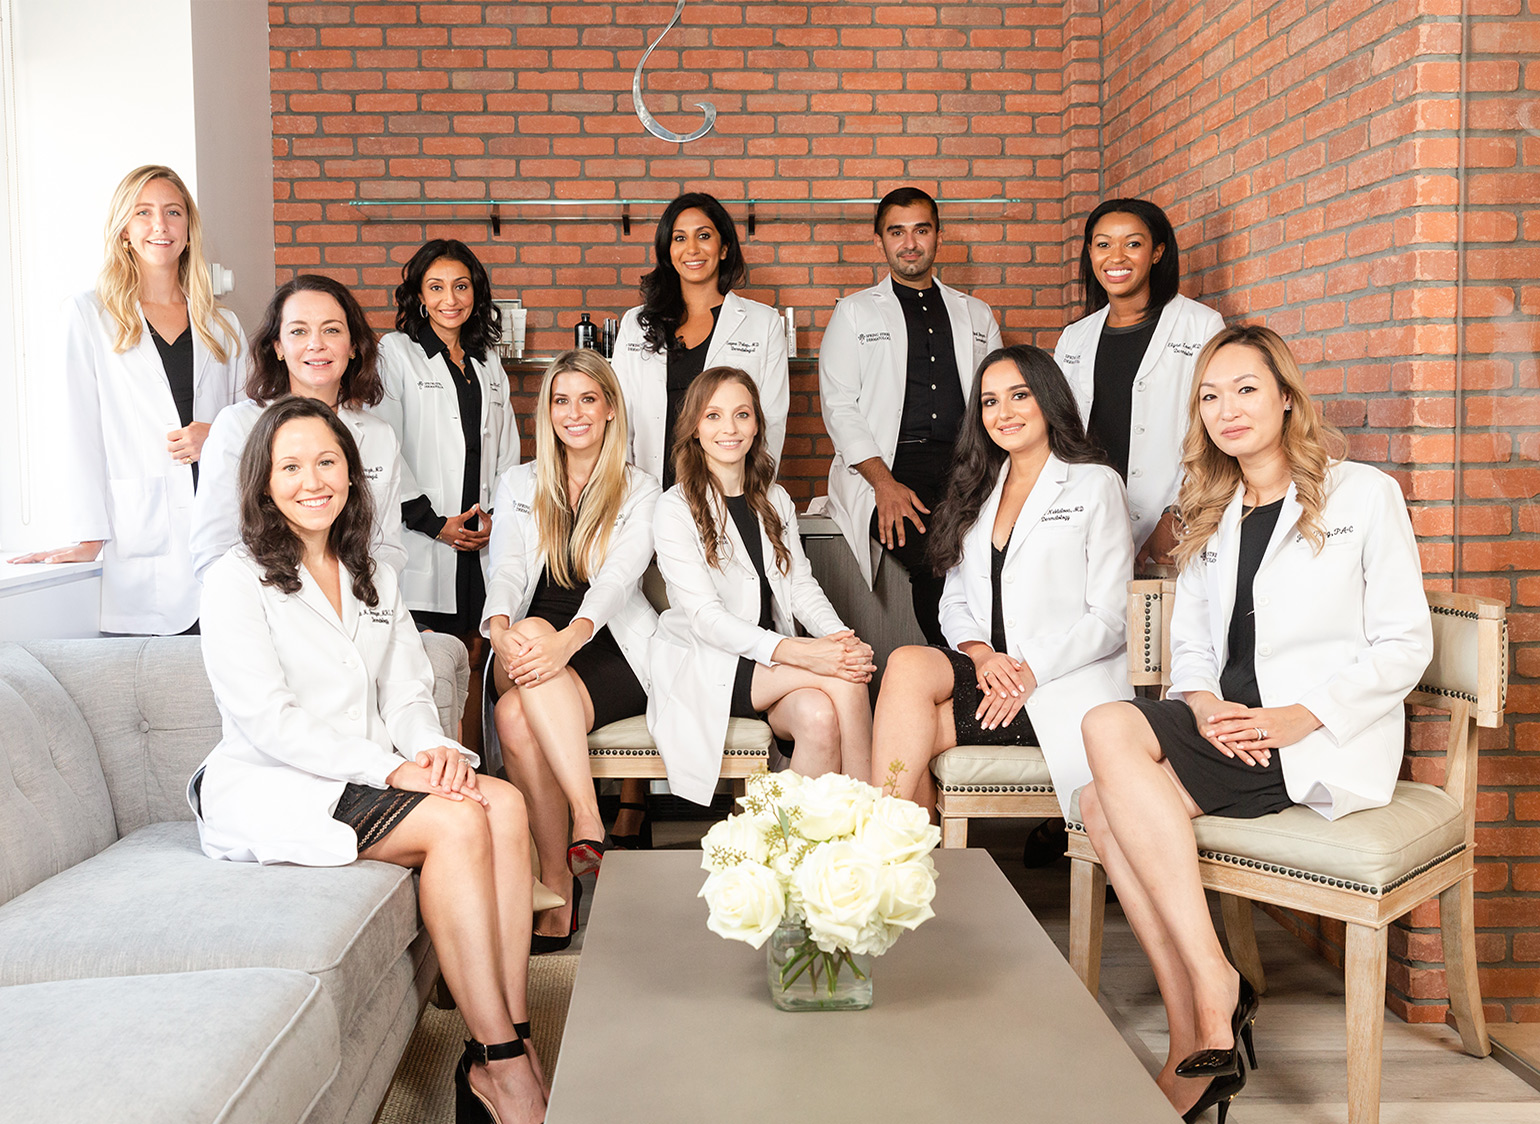 Photo of Spring Street Dermatology physicians